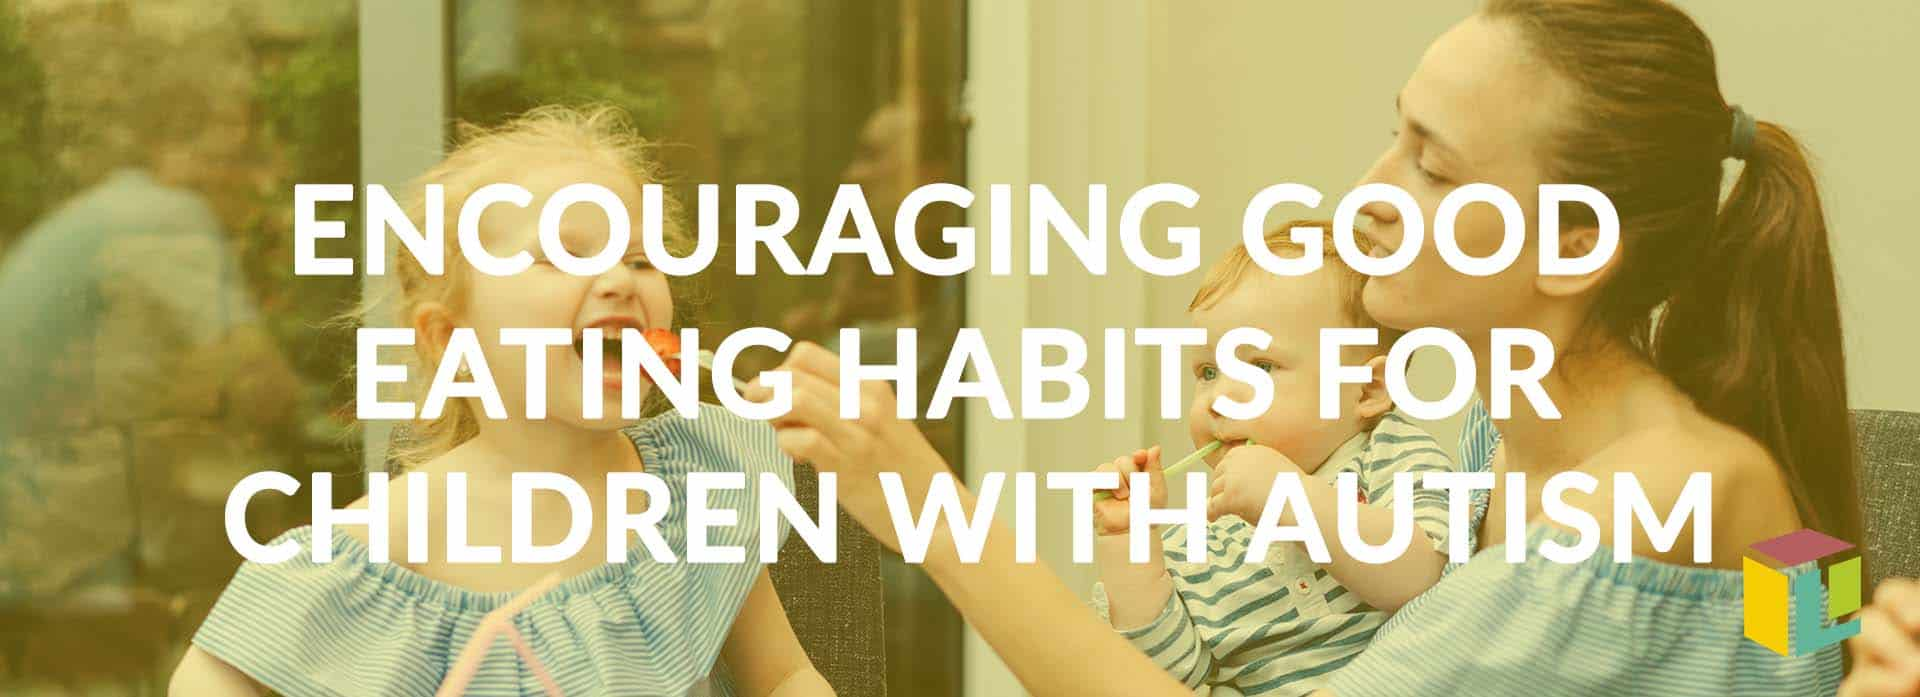 Encouraging Good Eating Habits For Children With Autism